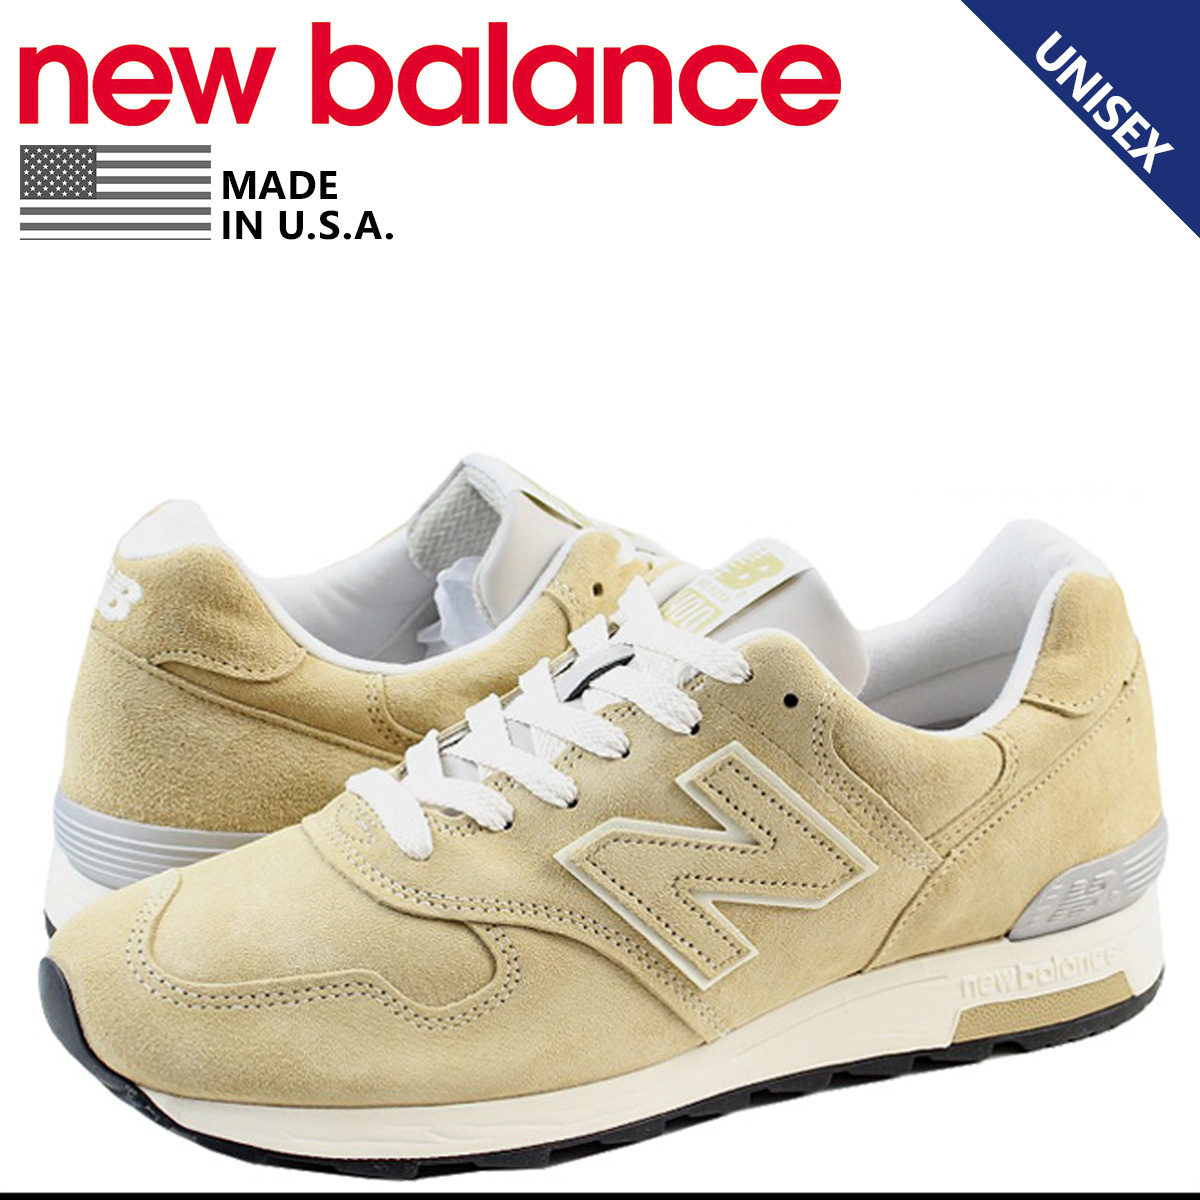 SneaK Online Shop | Rakuten Global Market: [SOLD OUT] new balance new balance sneakers beige M1400BE Made in U.S.A D wise suede men's